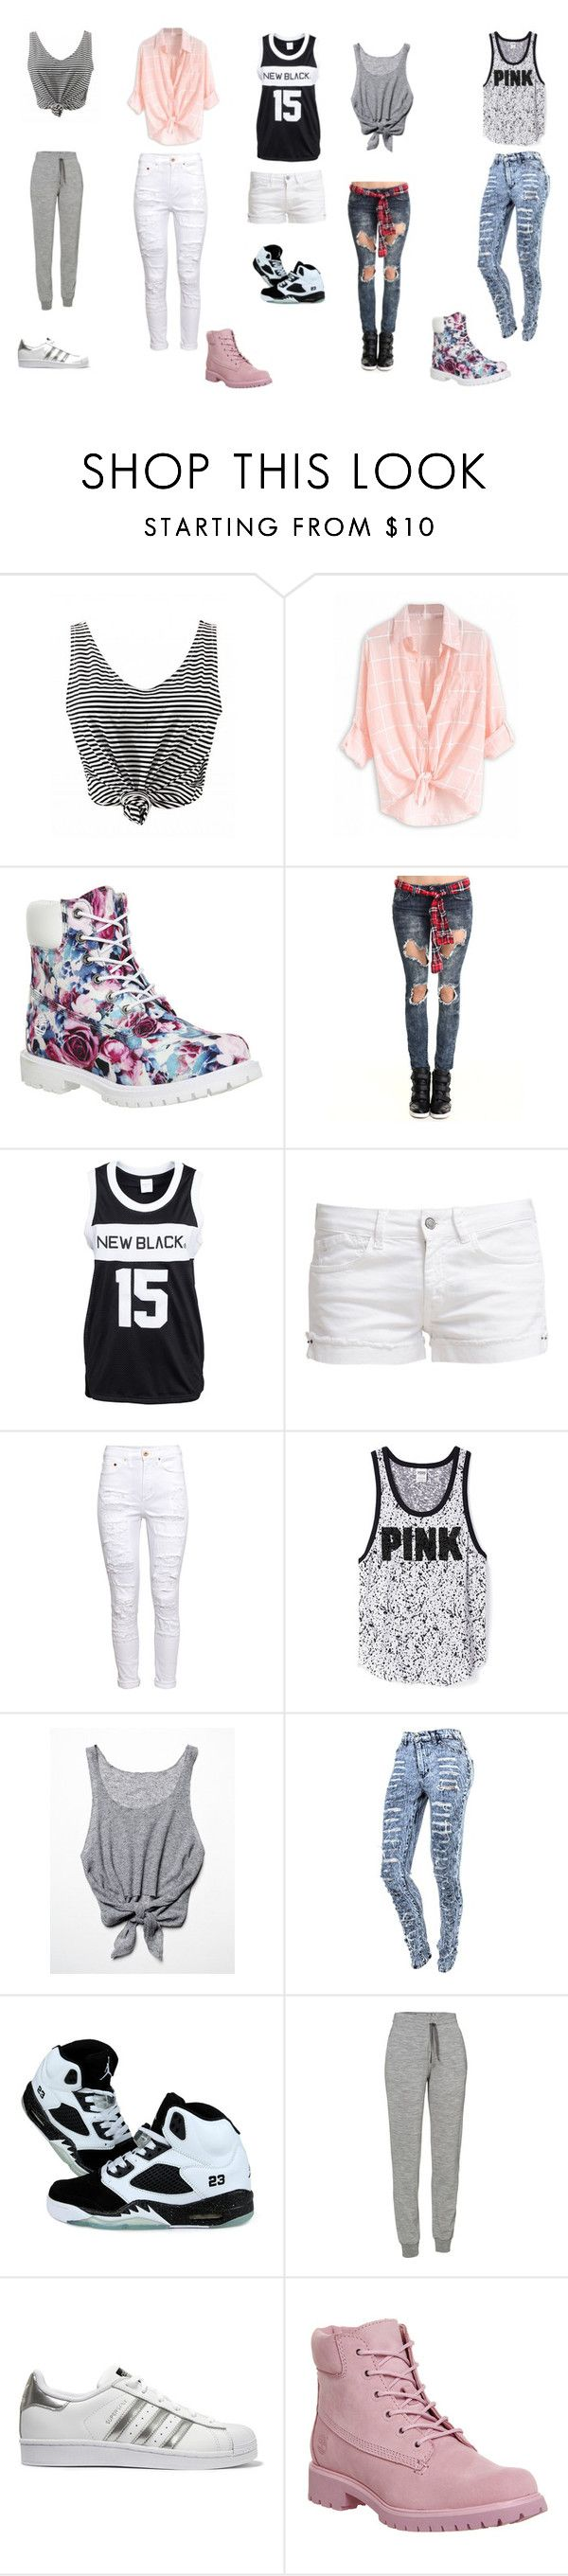 """ellean"" by fiction-1d-fiction on Polyvore featuring mode, Timberland, Almost Famous, New Black, Le Temps Des Cerises, H&M, Free People, Icebreaker et adidas Originals"